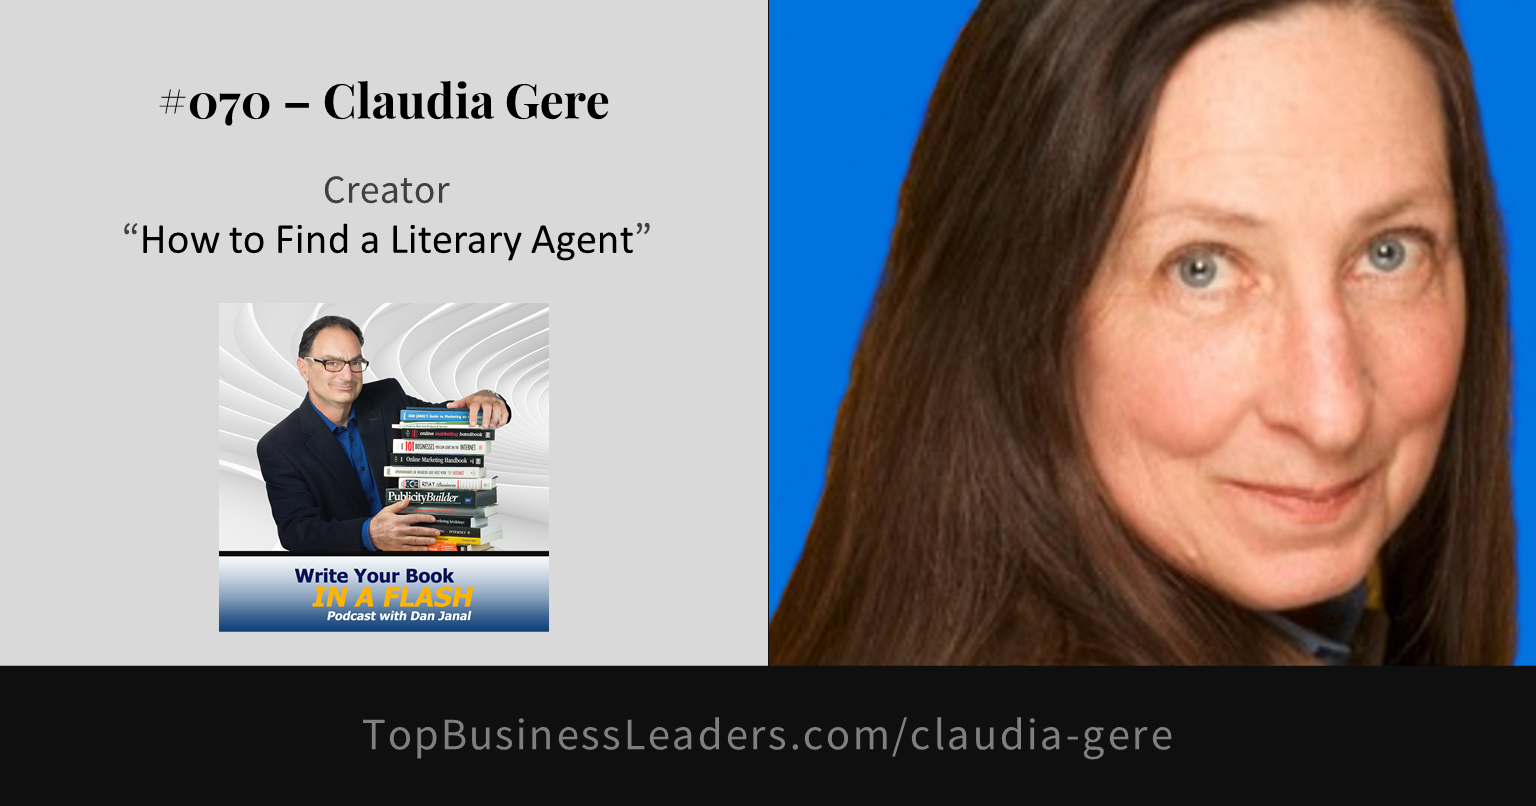 claudia-gere-topic-how-to-find-a-literary-agent